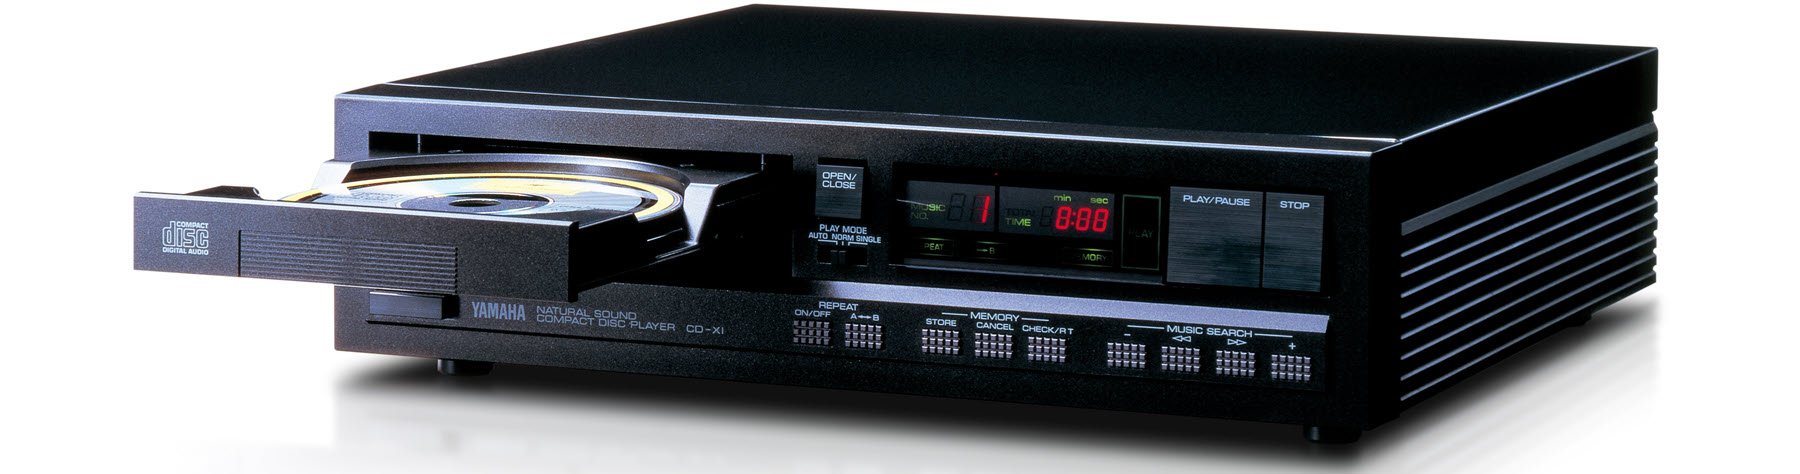 View of CD player with drawer open.